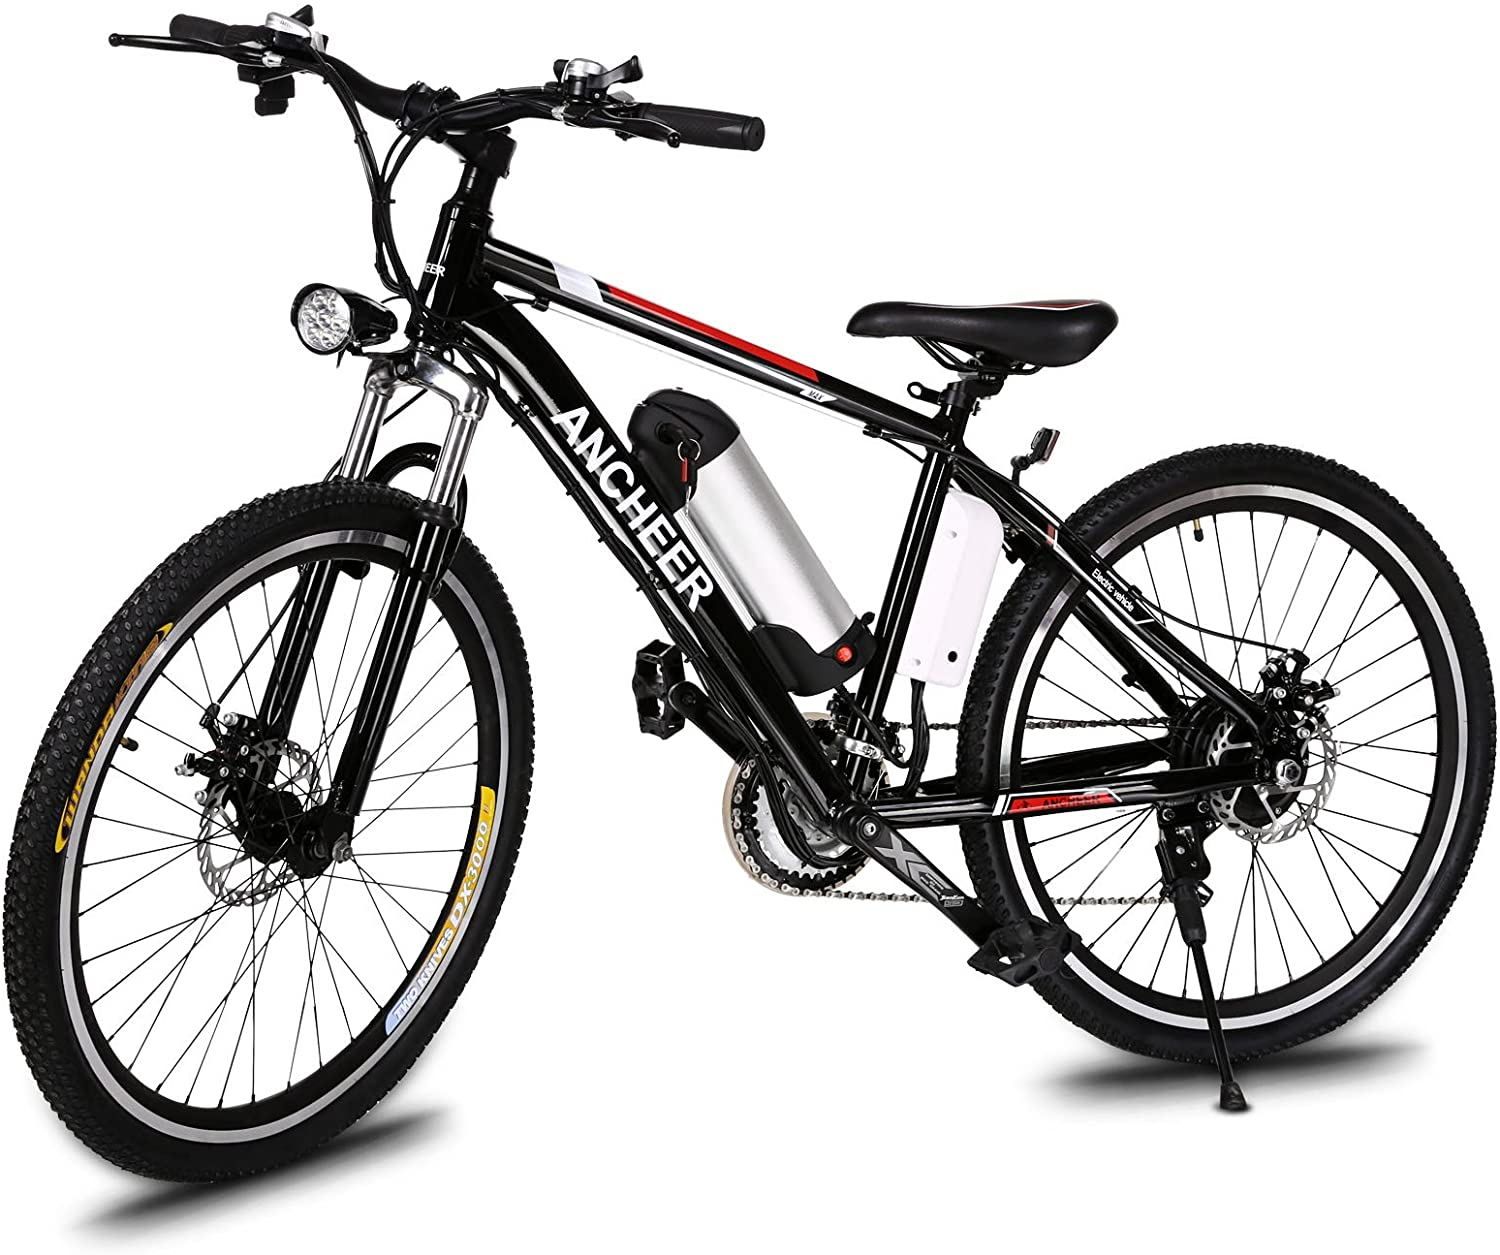 Ancheer electric mountain bike review 2020